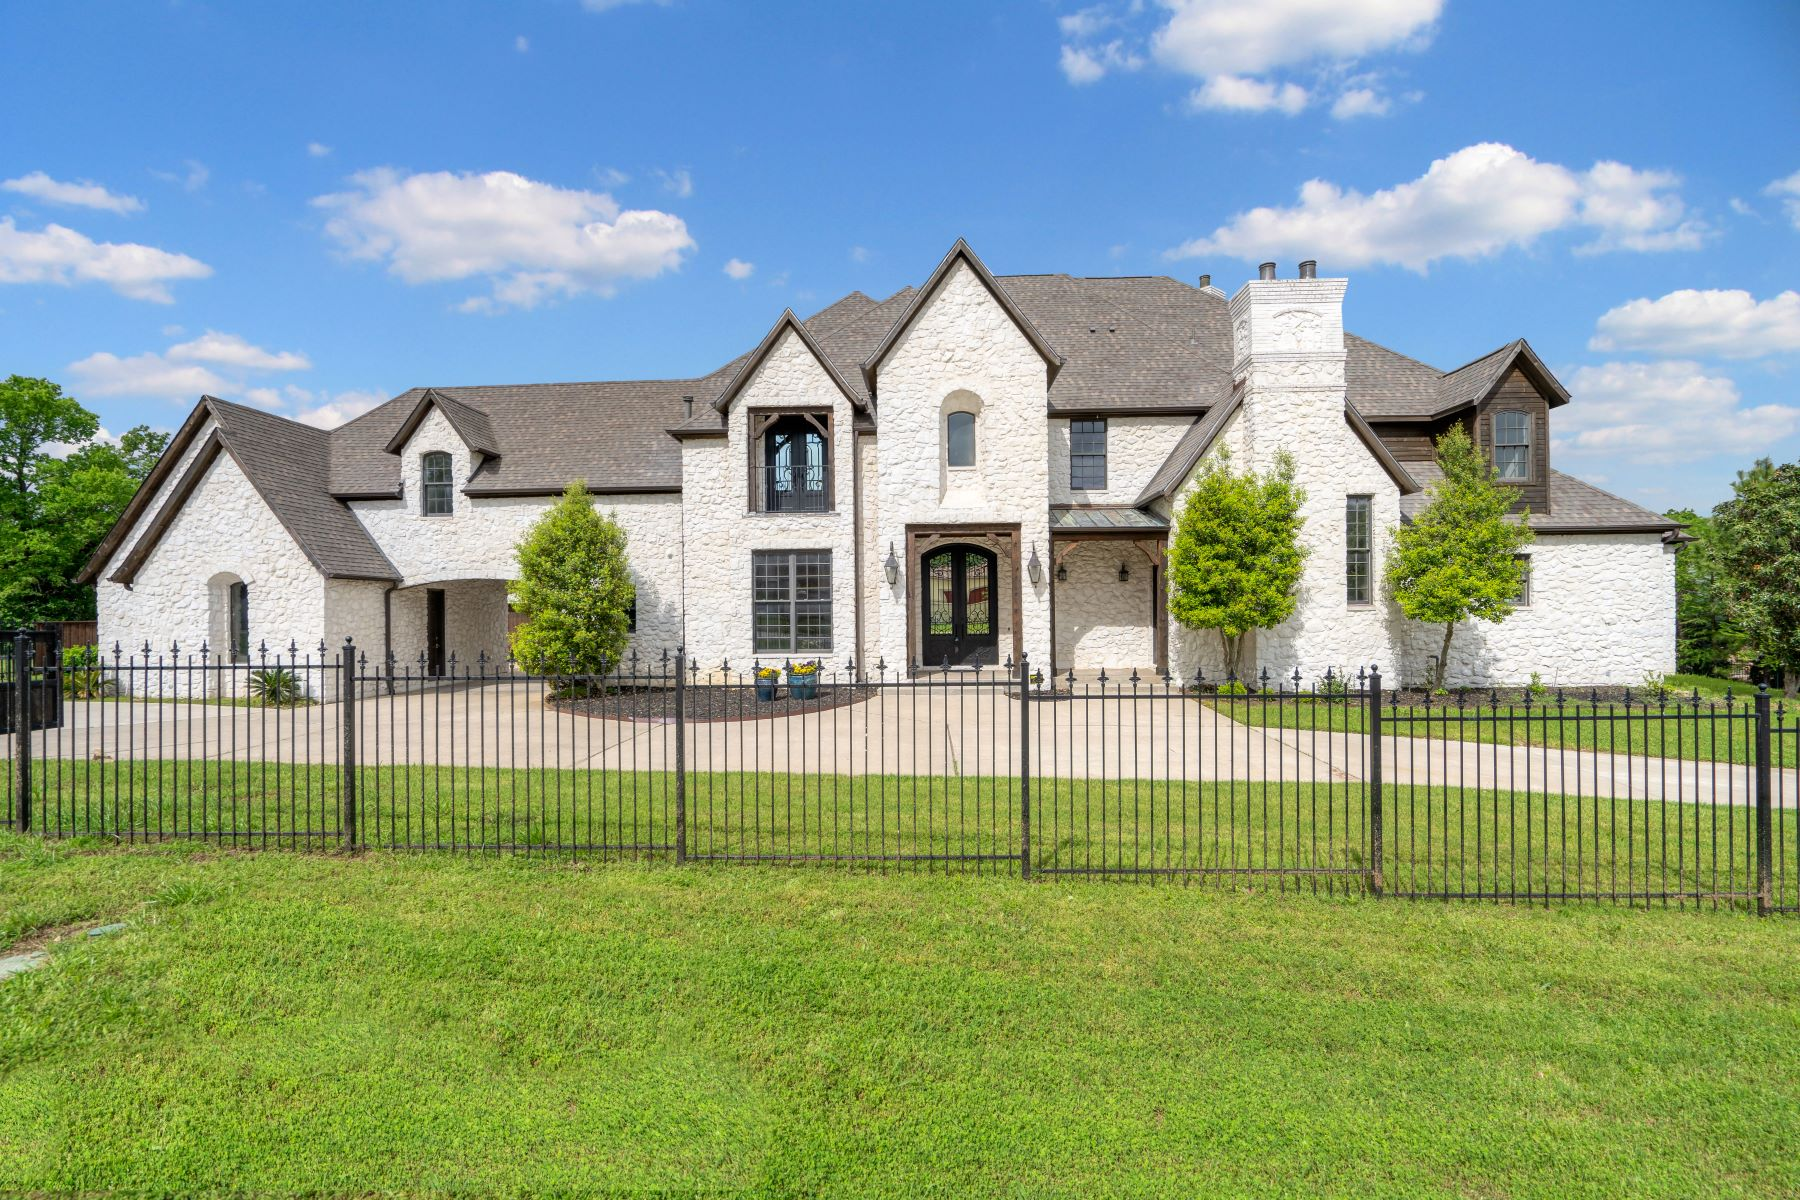 Single Family Homes for Sale at Peytonville Avenue Custom with Indoor Basketball Court! 2250 N Peytonville Avenue Southlake, Texas 76092 United States